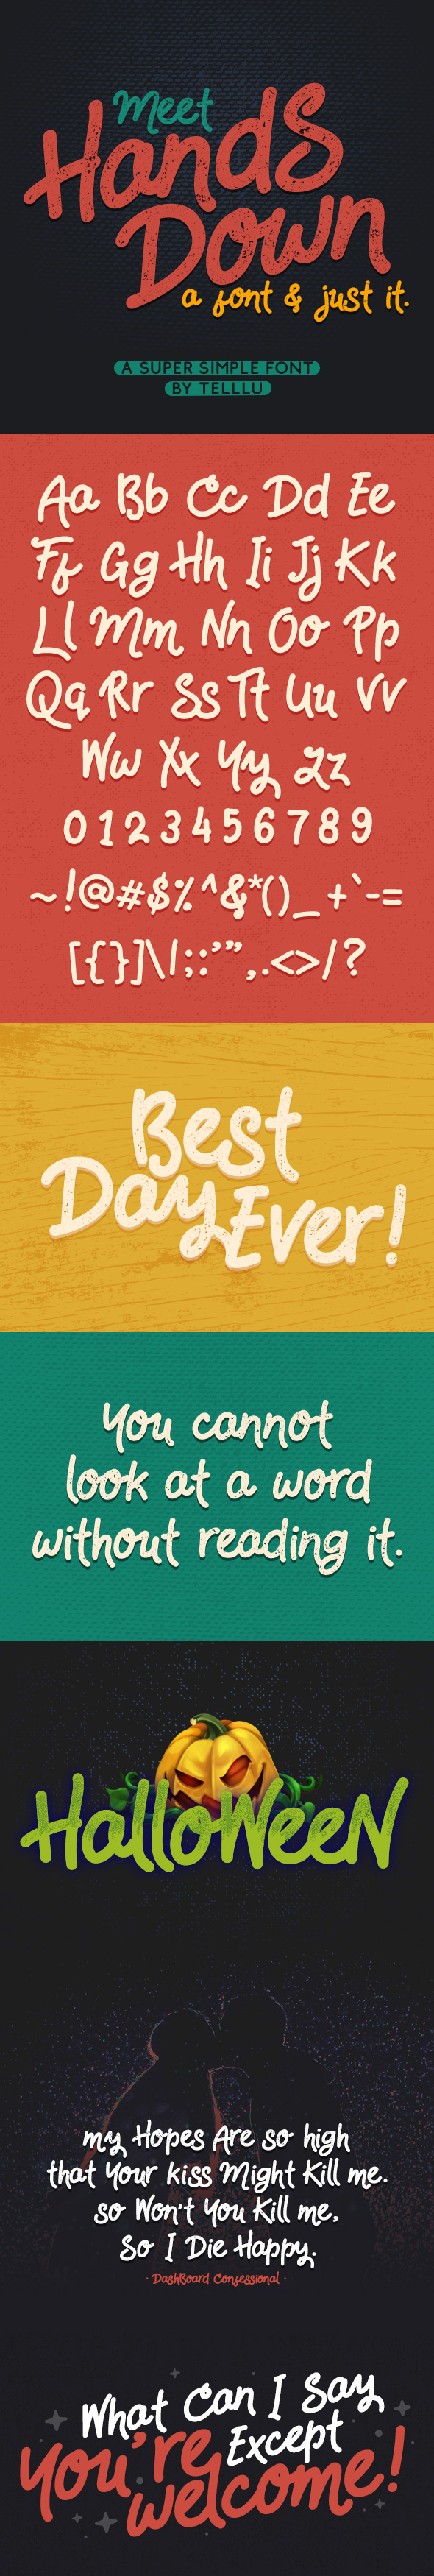 Fonts from GraphicRiver